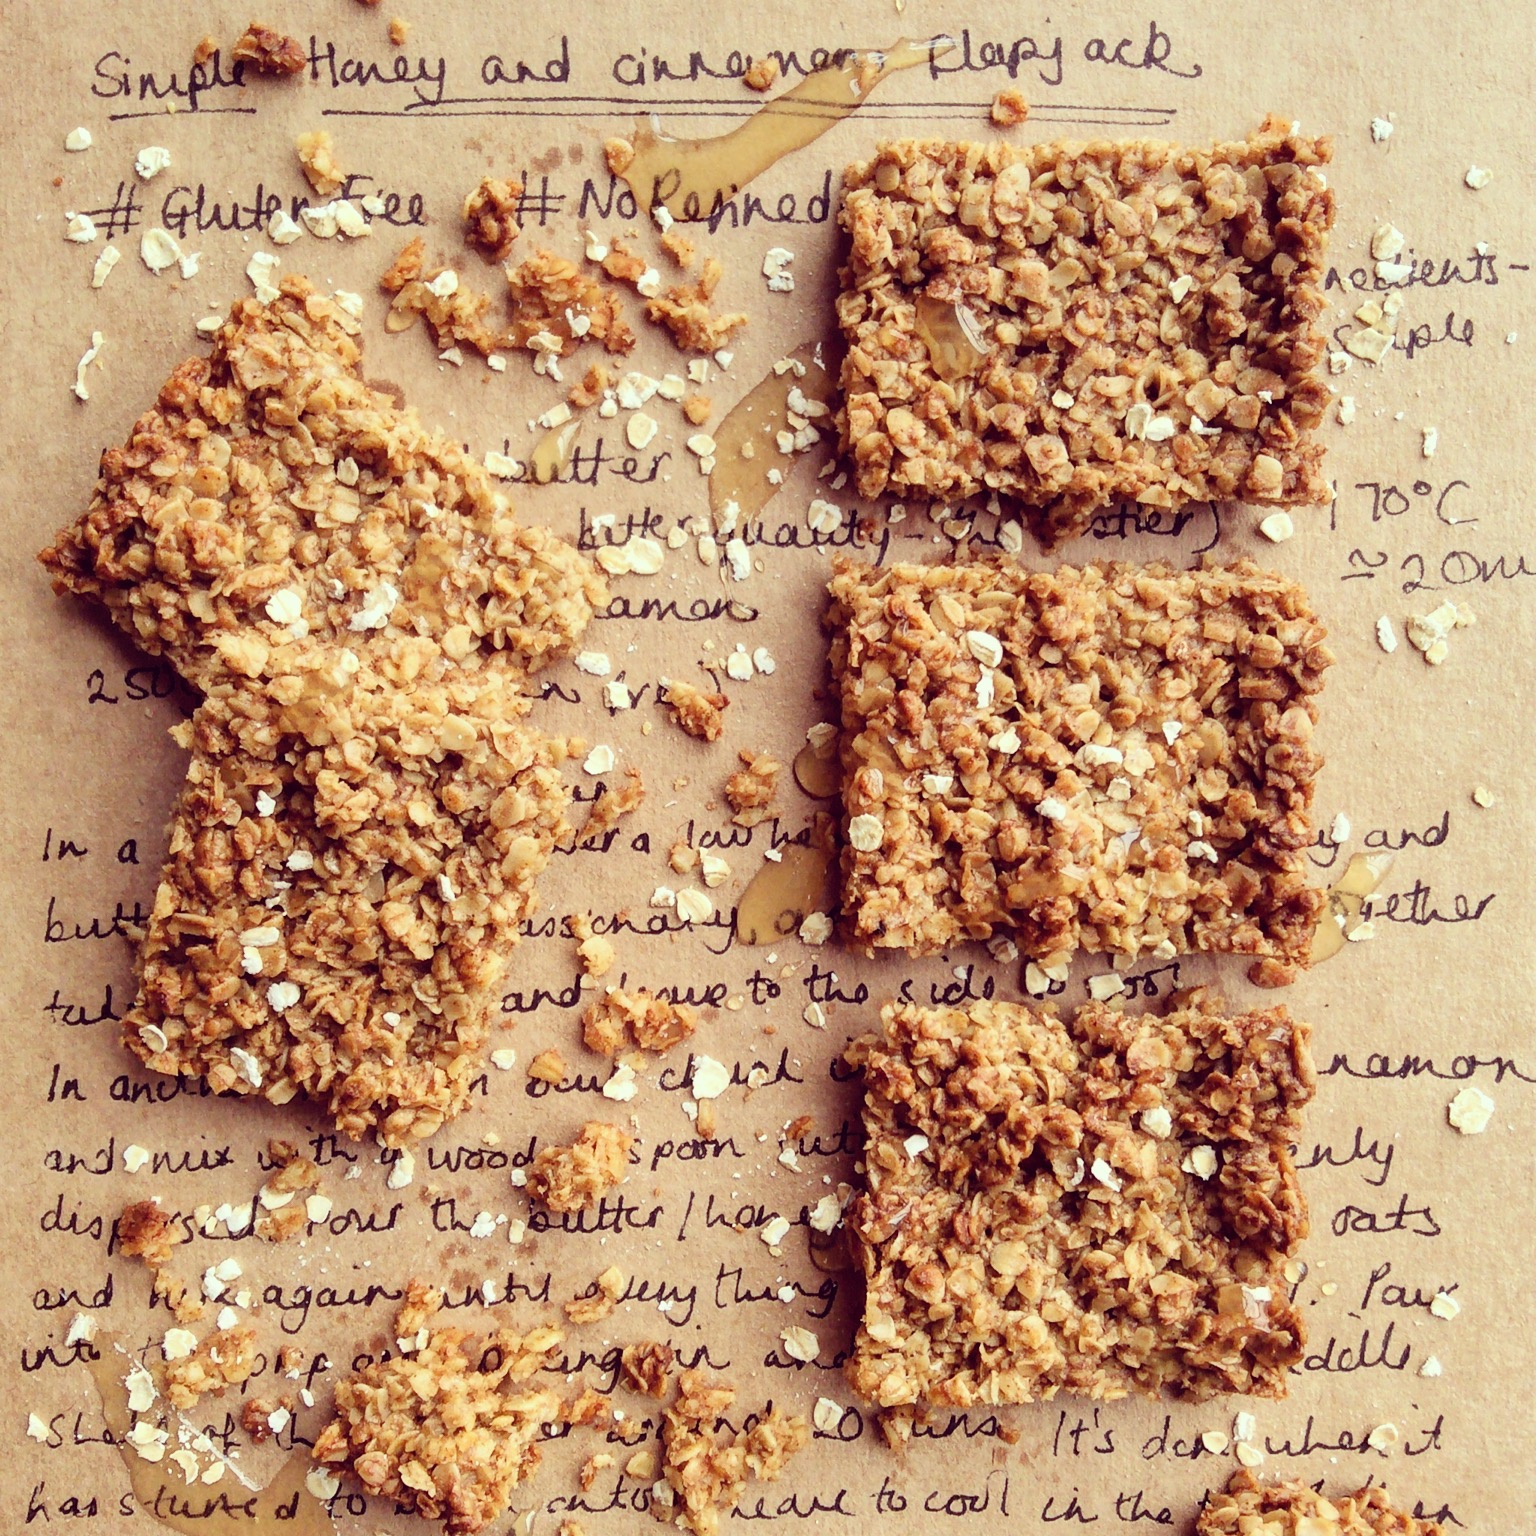 Simple Honey and Cinnamon Flapjack